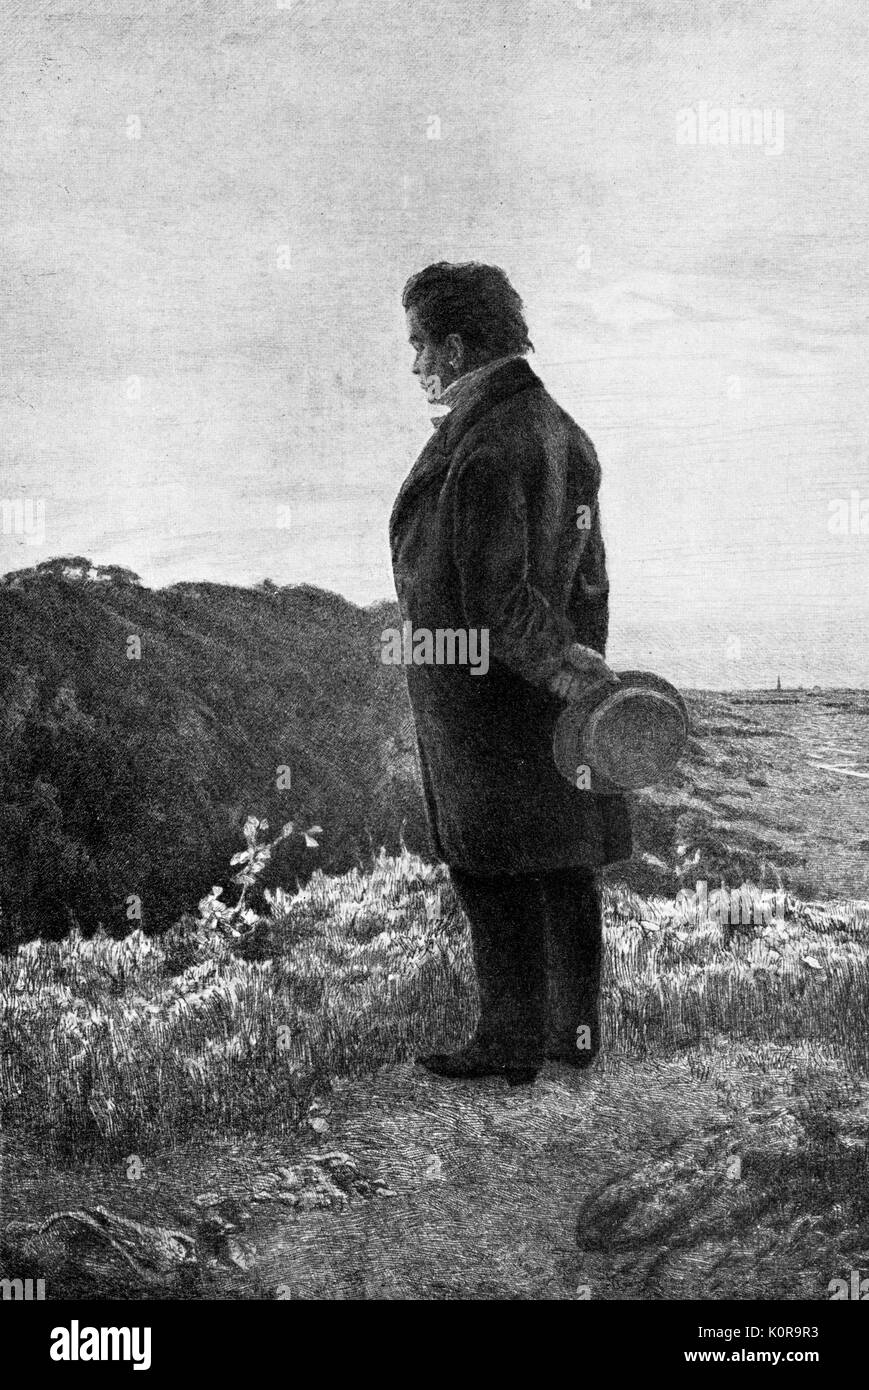 the musical achievements and influence of german composer ludwig van beethoven Ludwig van beethoven: ludwig van beethoven, german composer, the predominant musical figure in the transitional period between the classical and romantic eras.